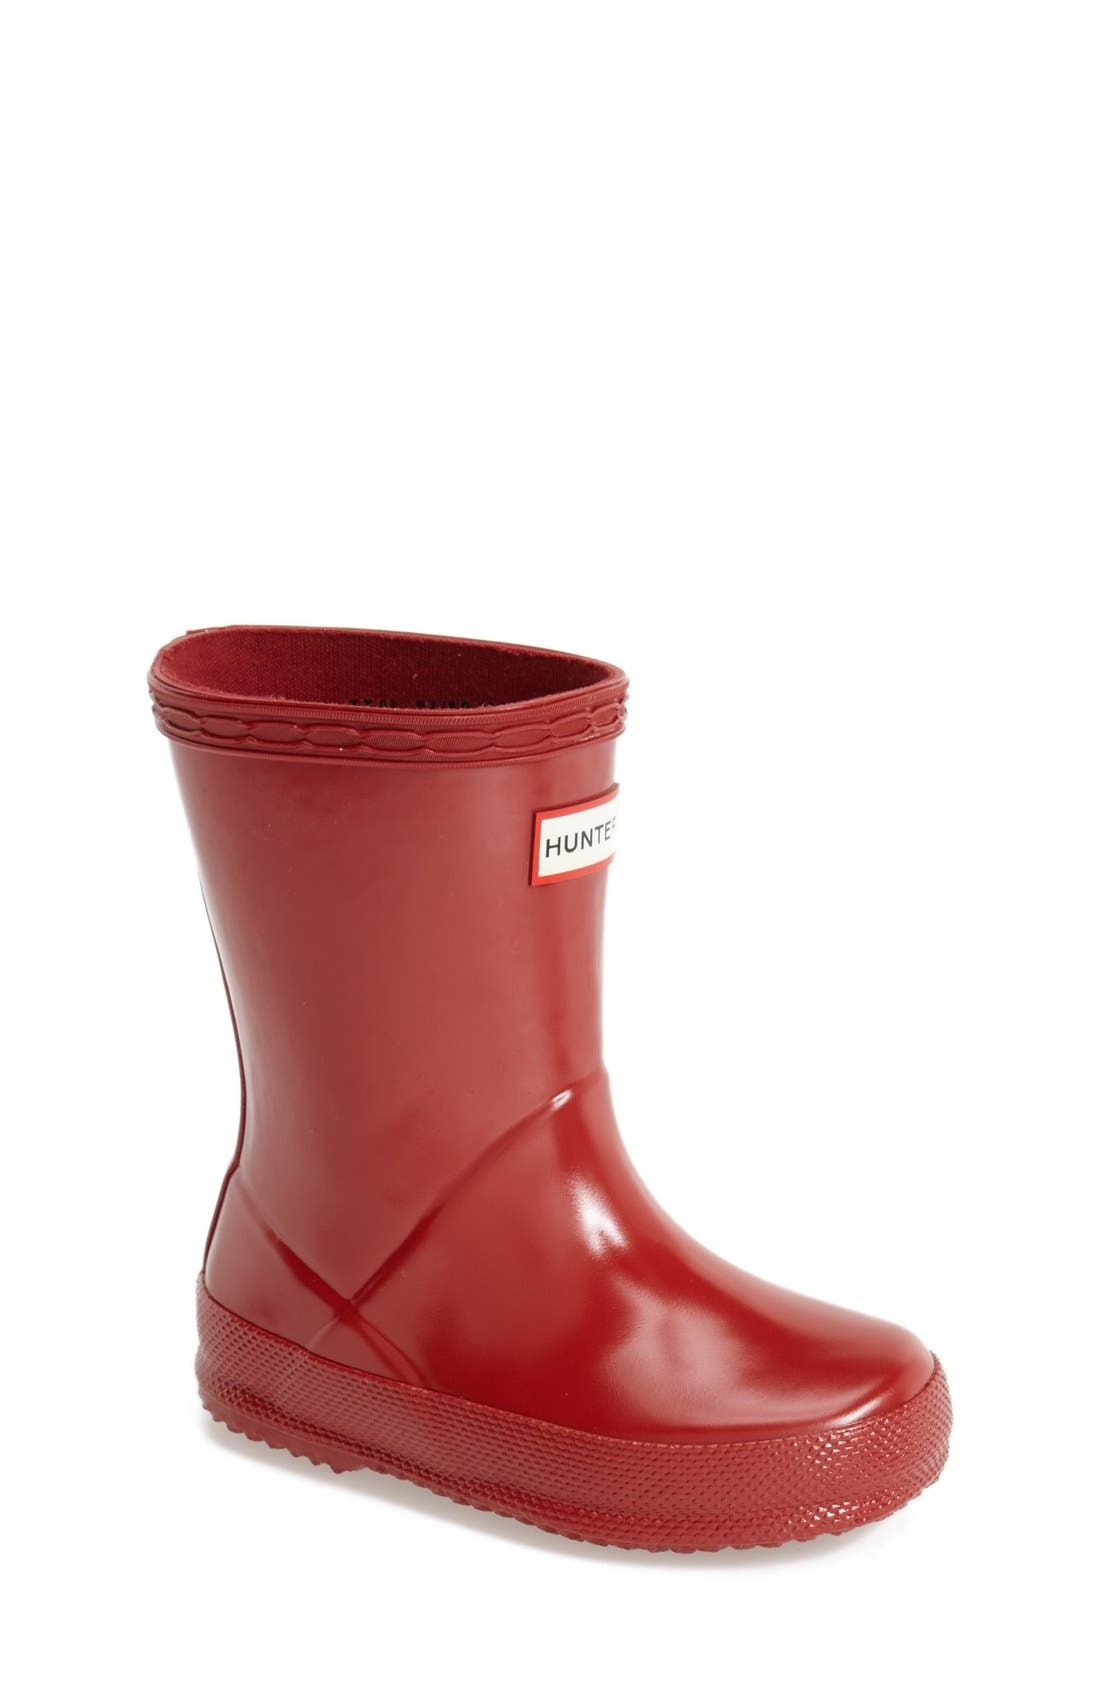 Alternate Image 1 Selected - Hunter 'First Gloss' Rain Boot (Walker, Toddler & Little Kid)